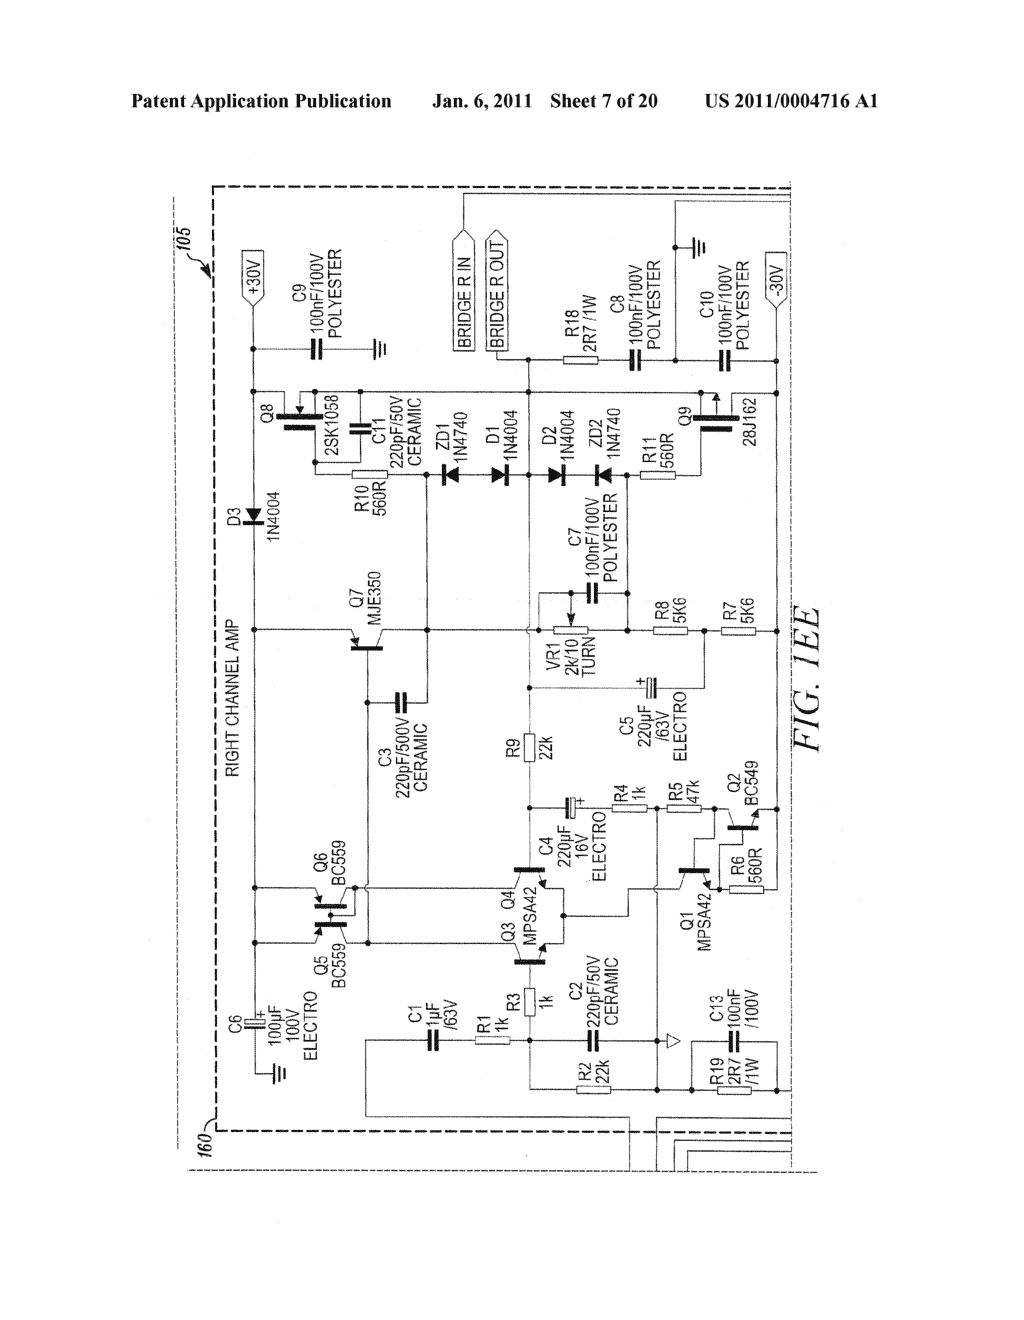 Discrete Lateral Mosfet Power Amplifier Expansion Card Diagram 100w With Pcb Circuit Diy Schematic And Image 08